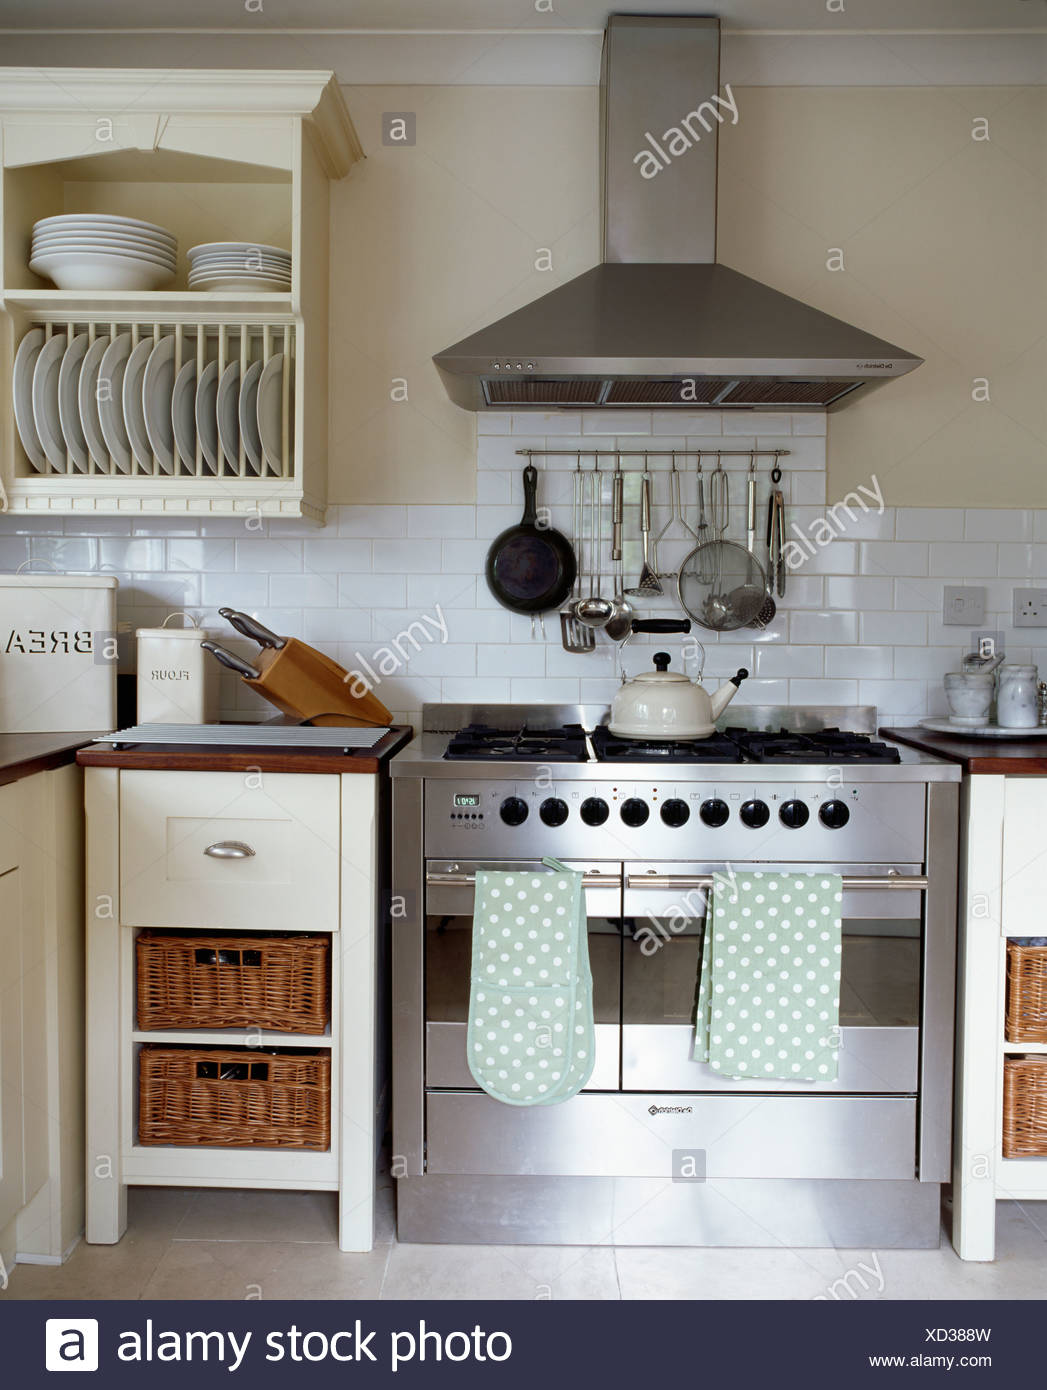 Phenomenal Extractor Above Stainless Steel Range Oven Between Download Free Architecture Designs Itiscsunscenecom